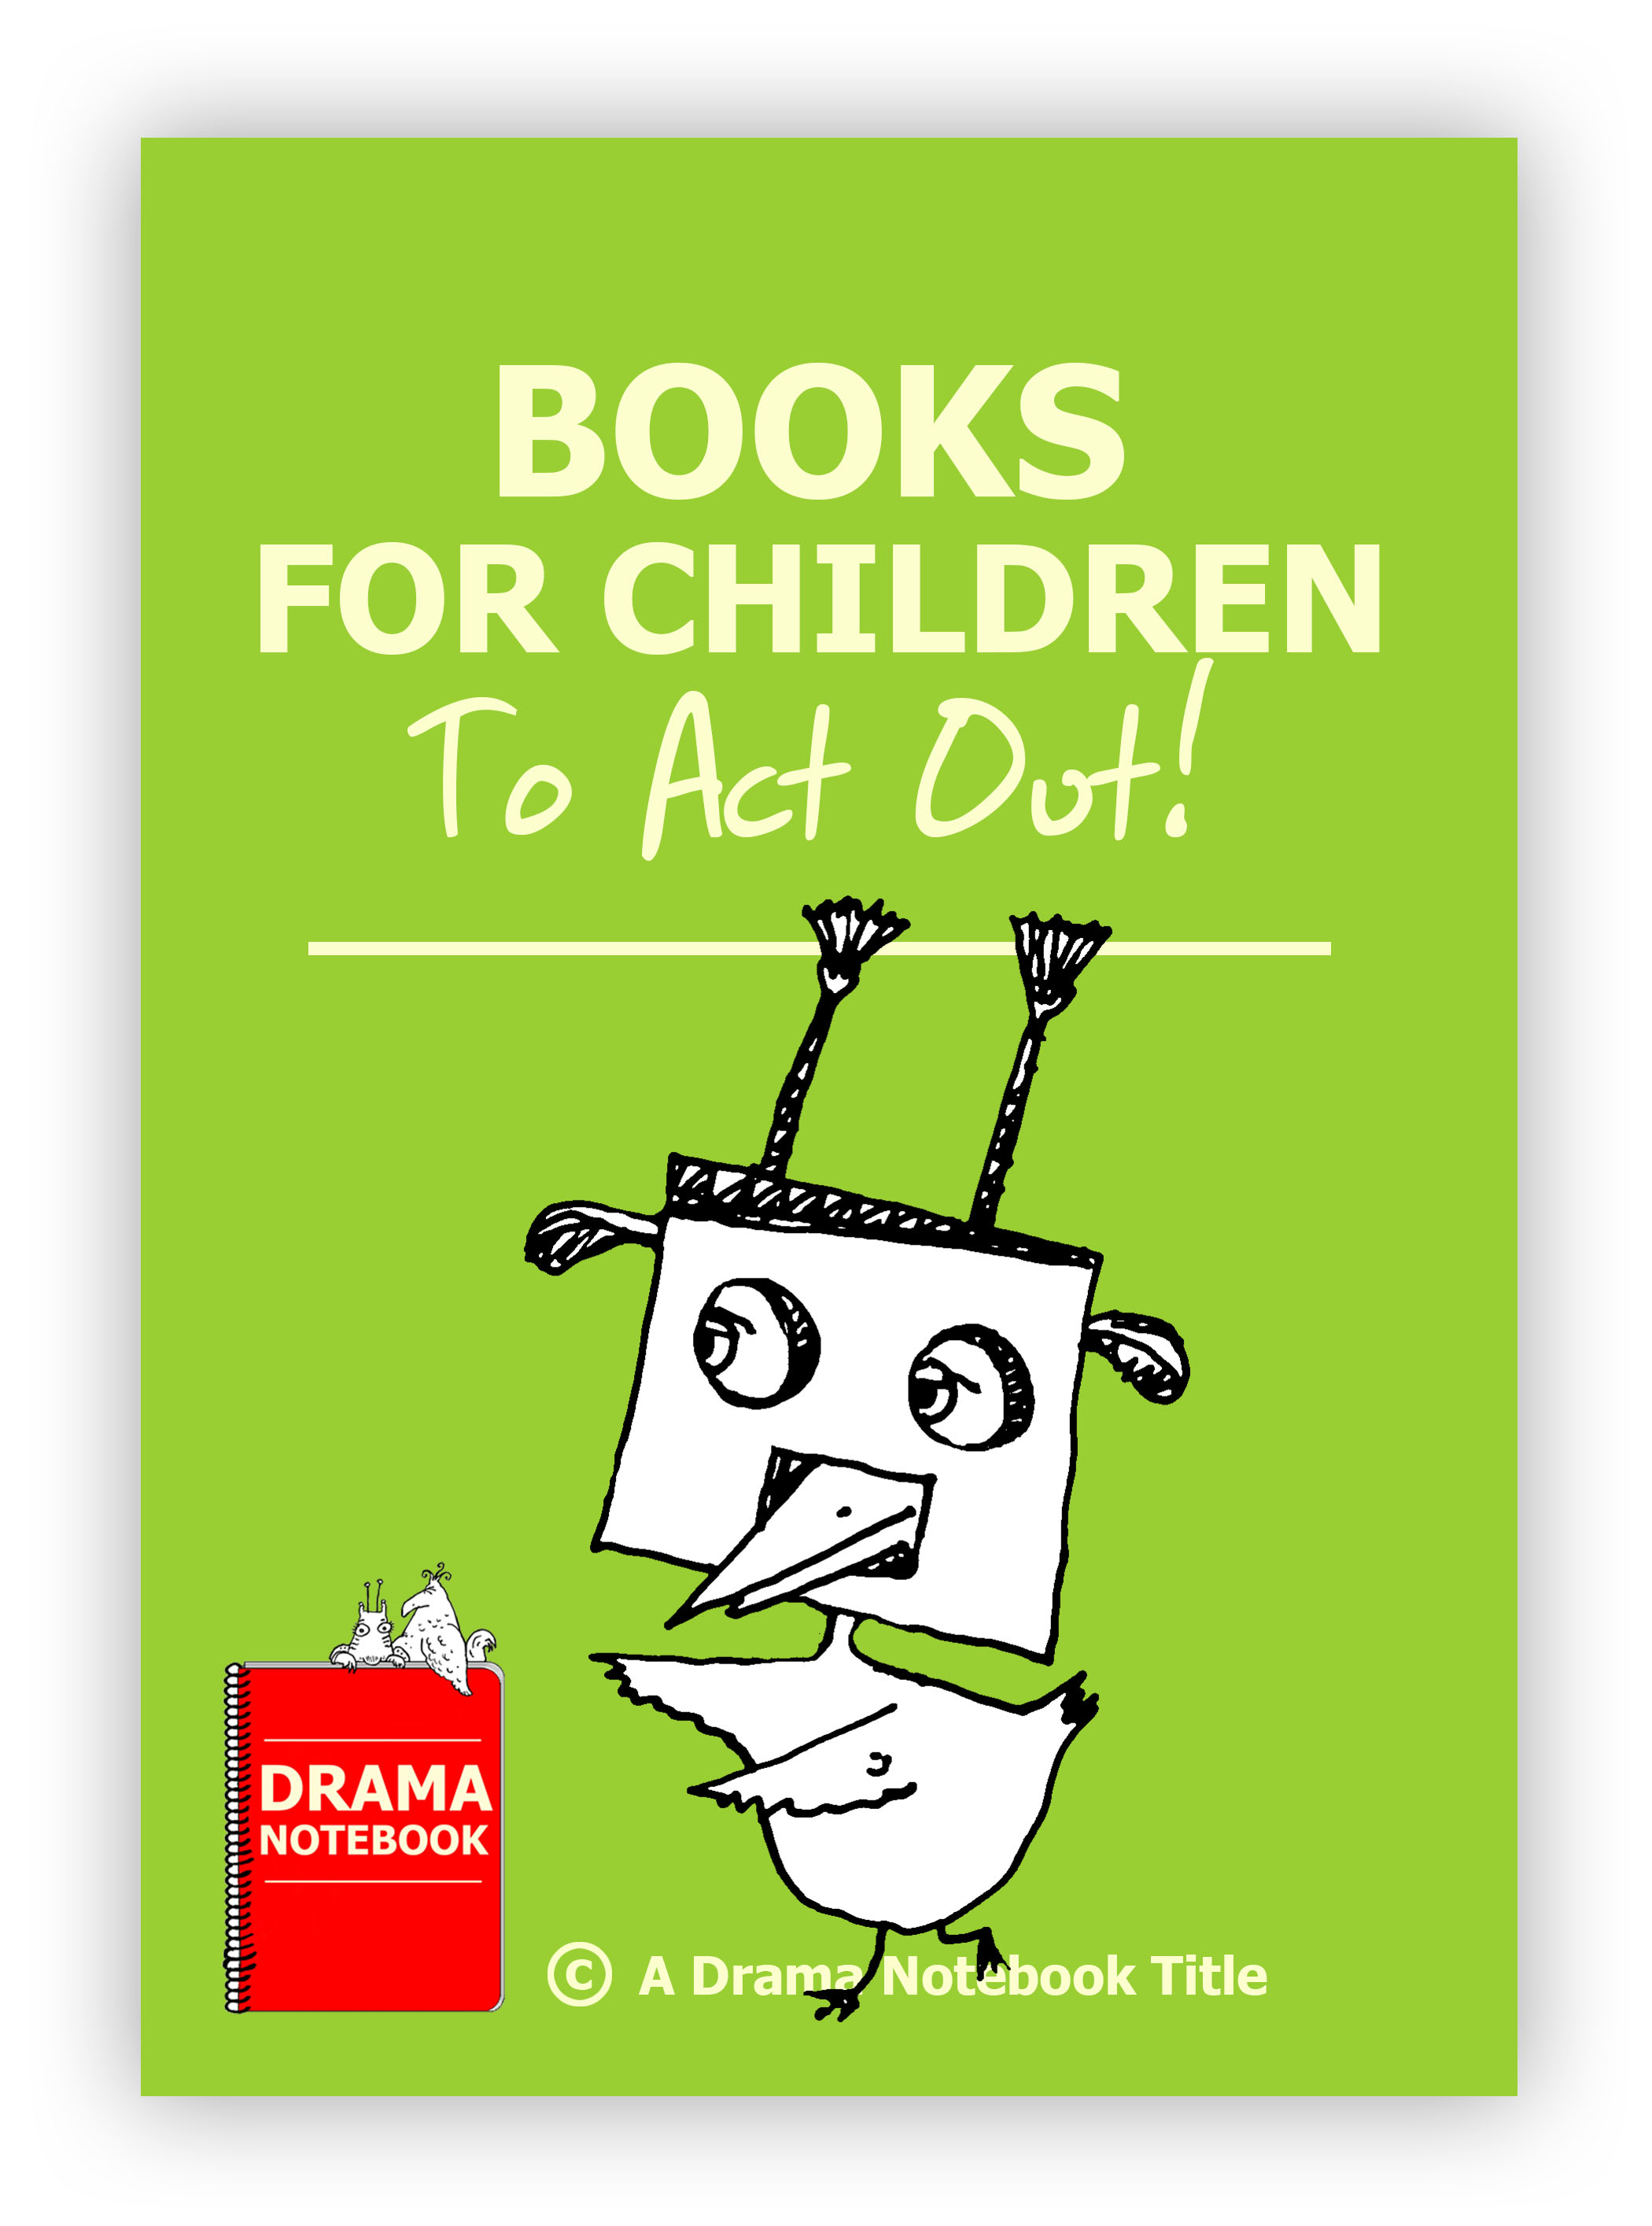 Books for Children to Act Out